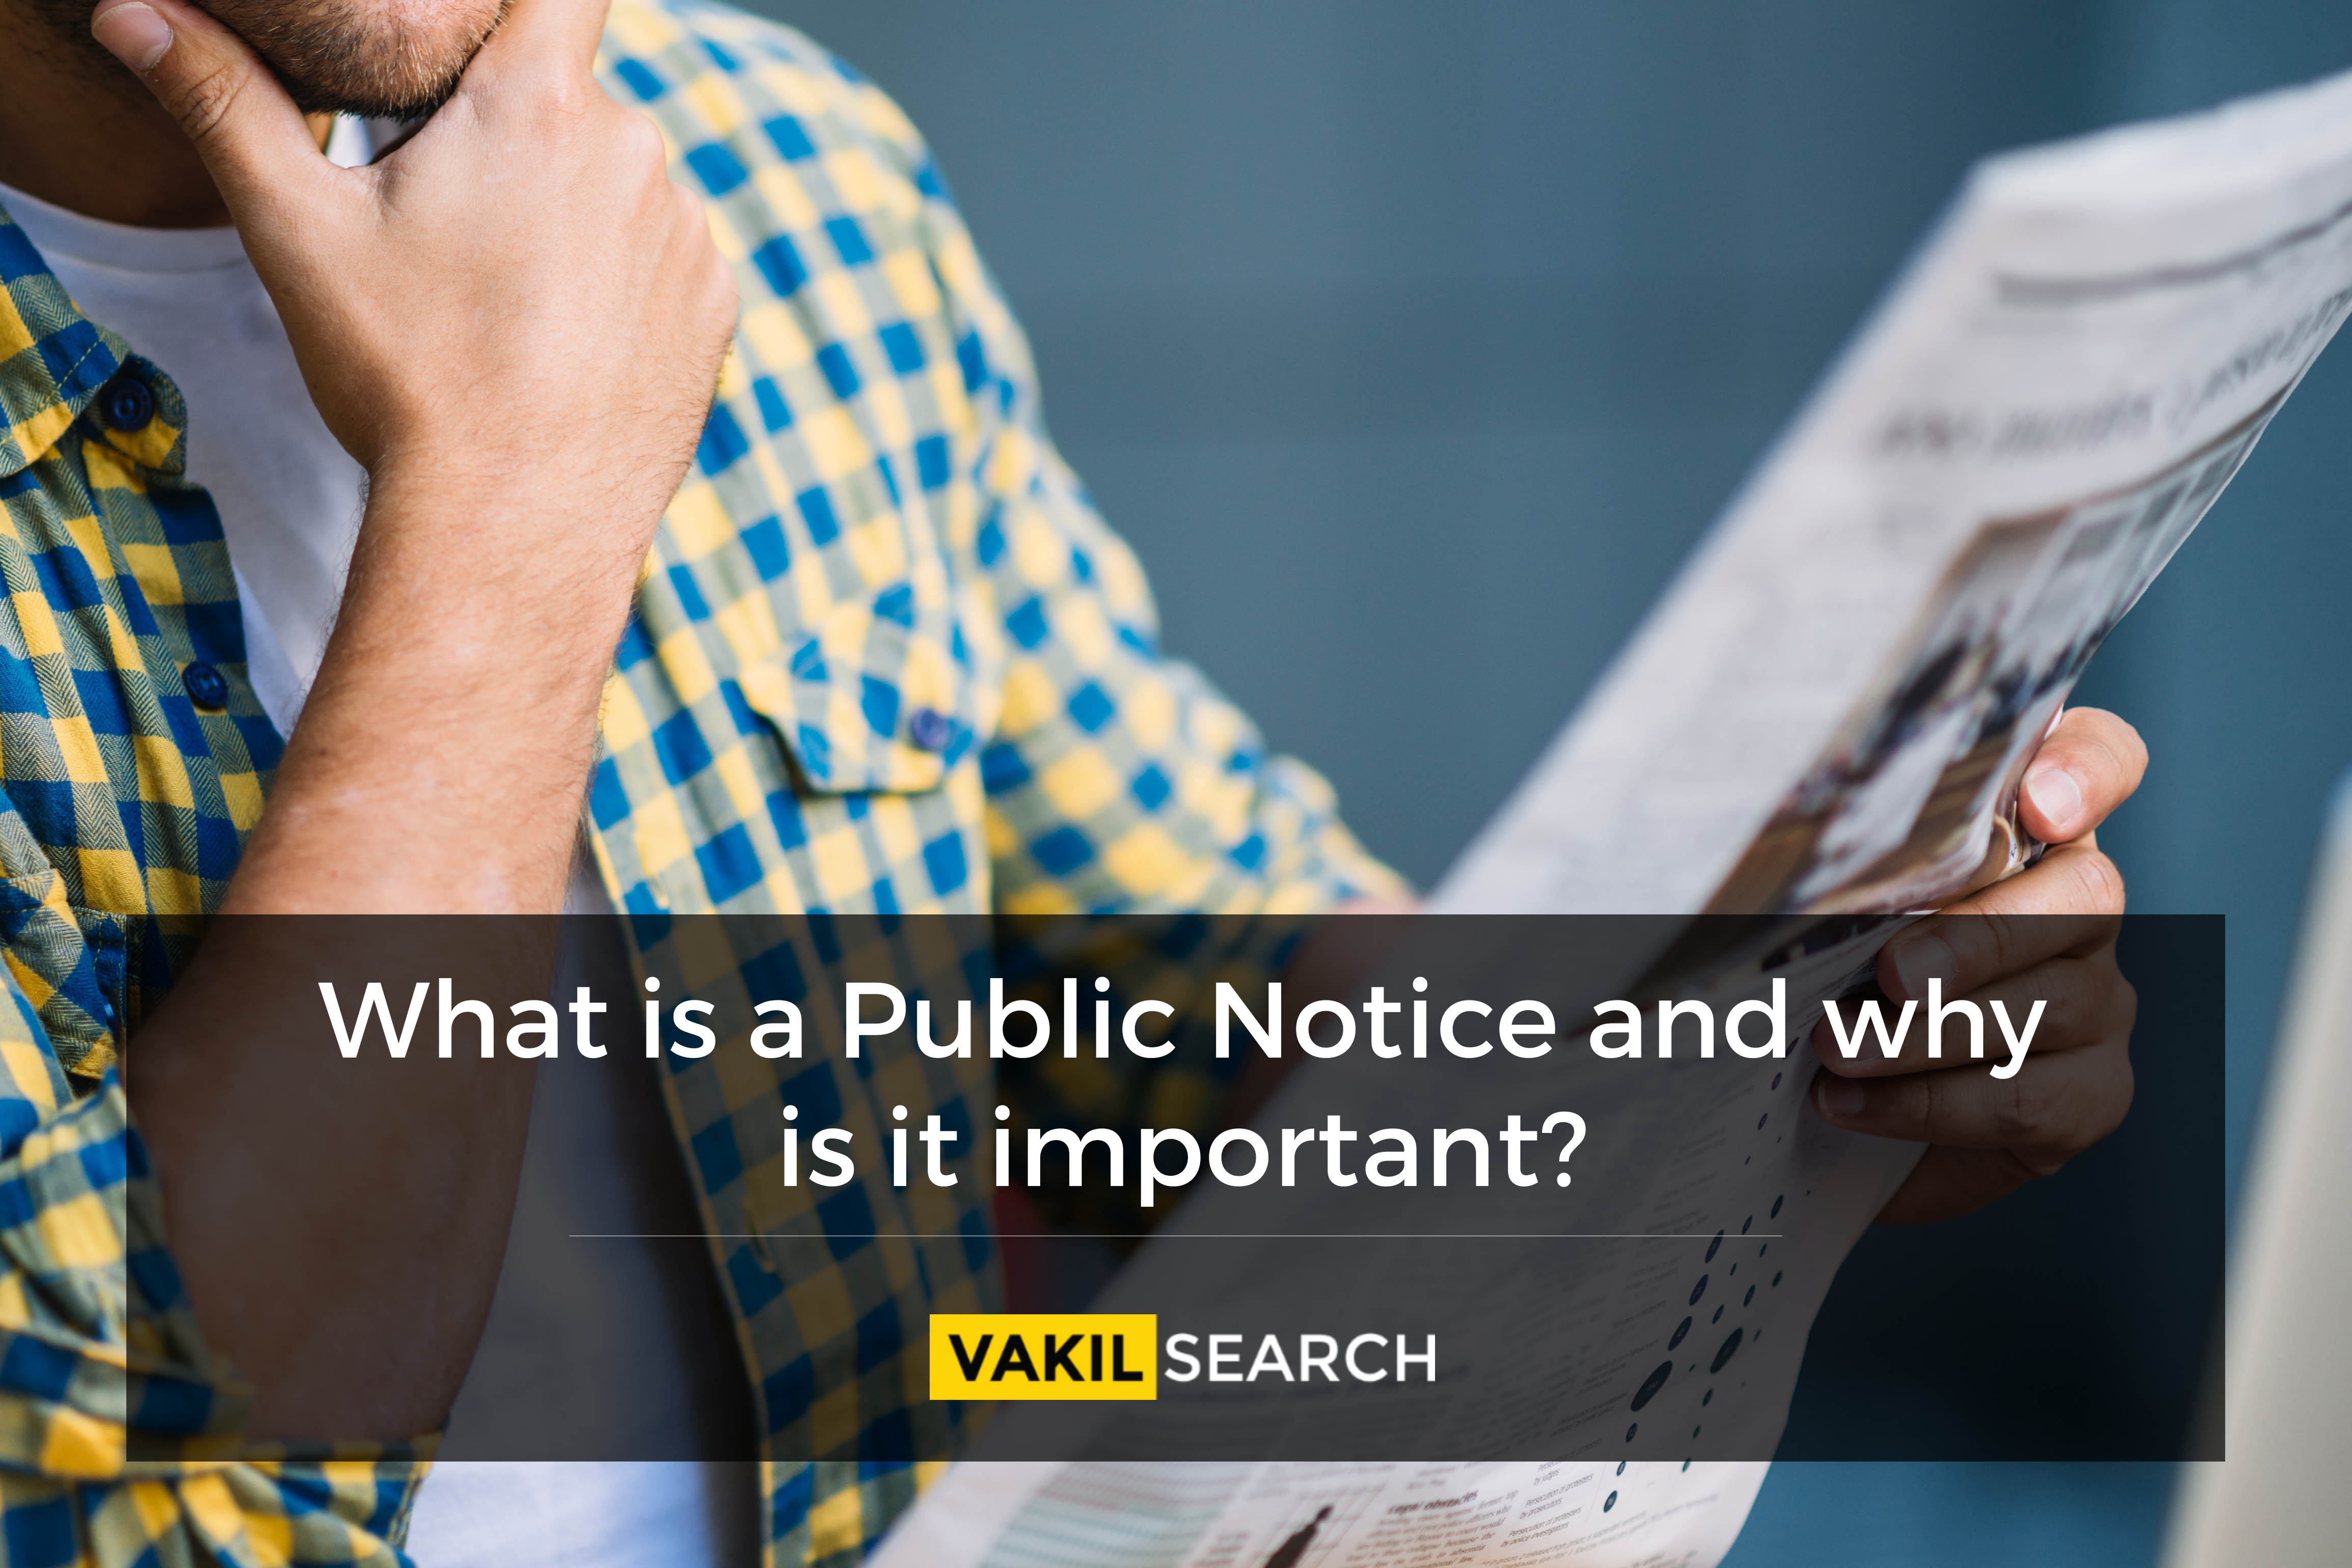 what is public notice, what are public notices